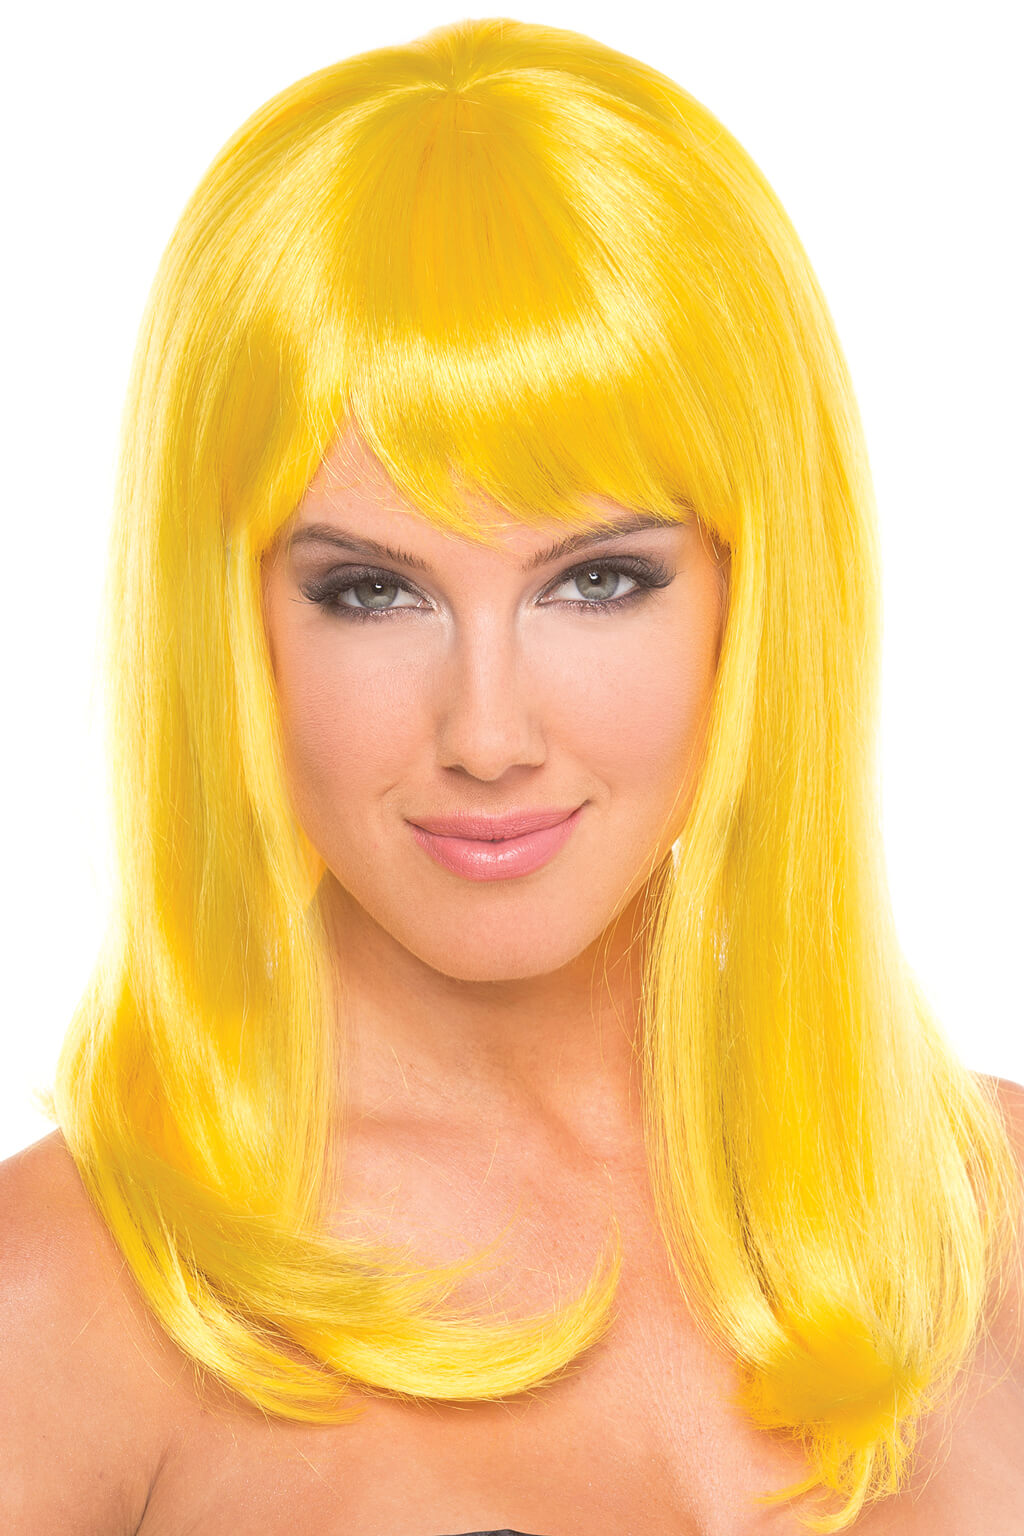 Hollywood Wig in Vibrant Colors - Twilight Silk